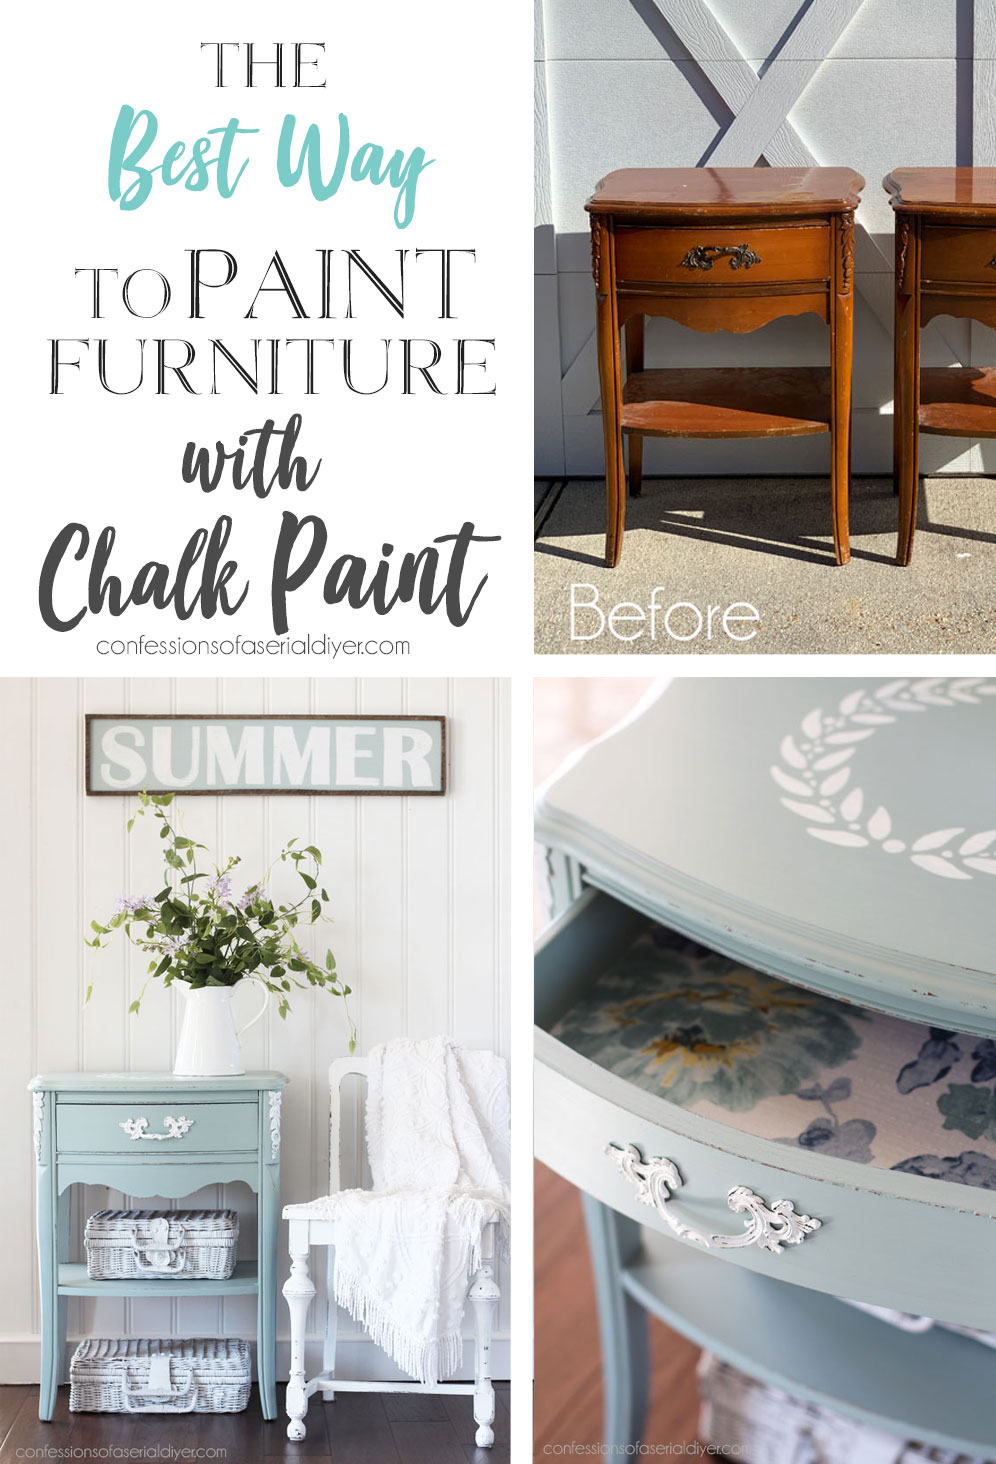 The Best Way to Chalk Paint Furniture